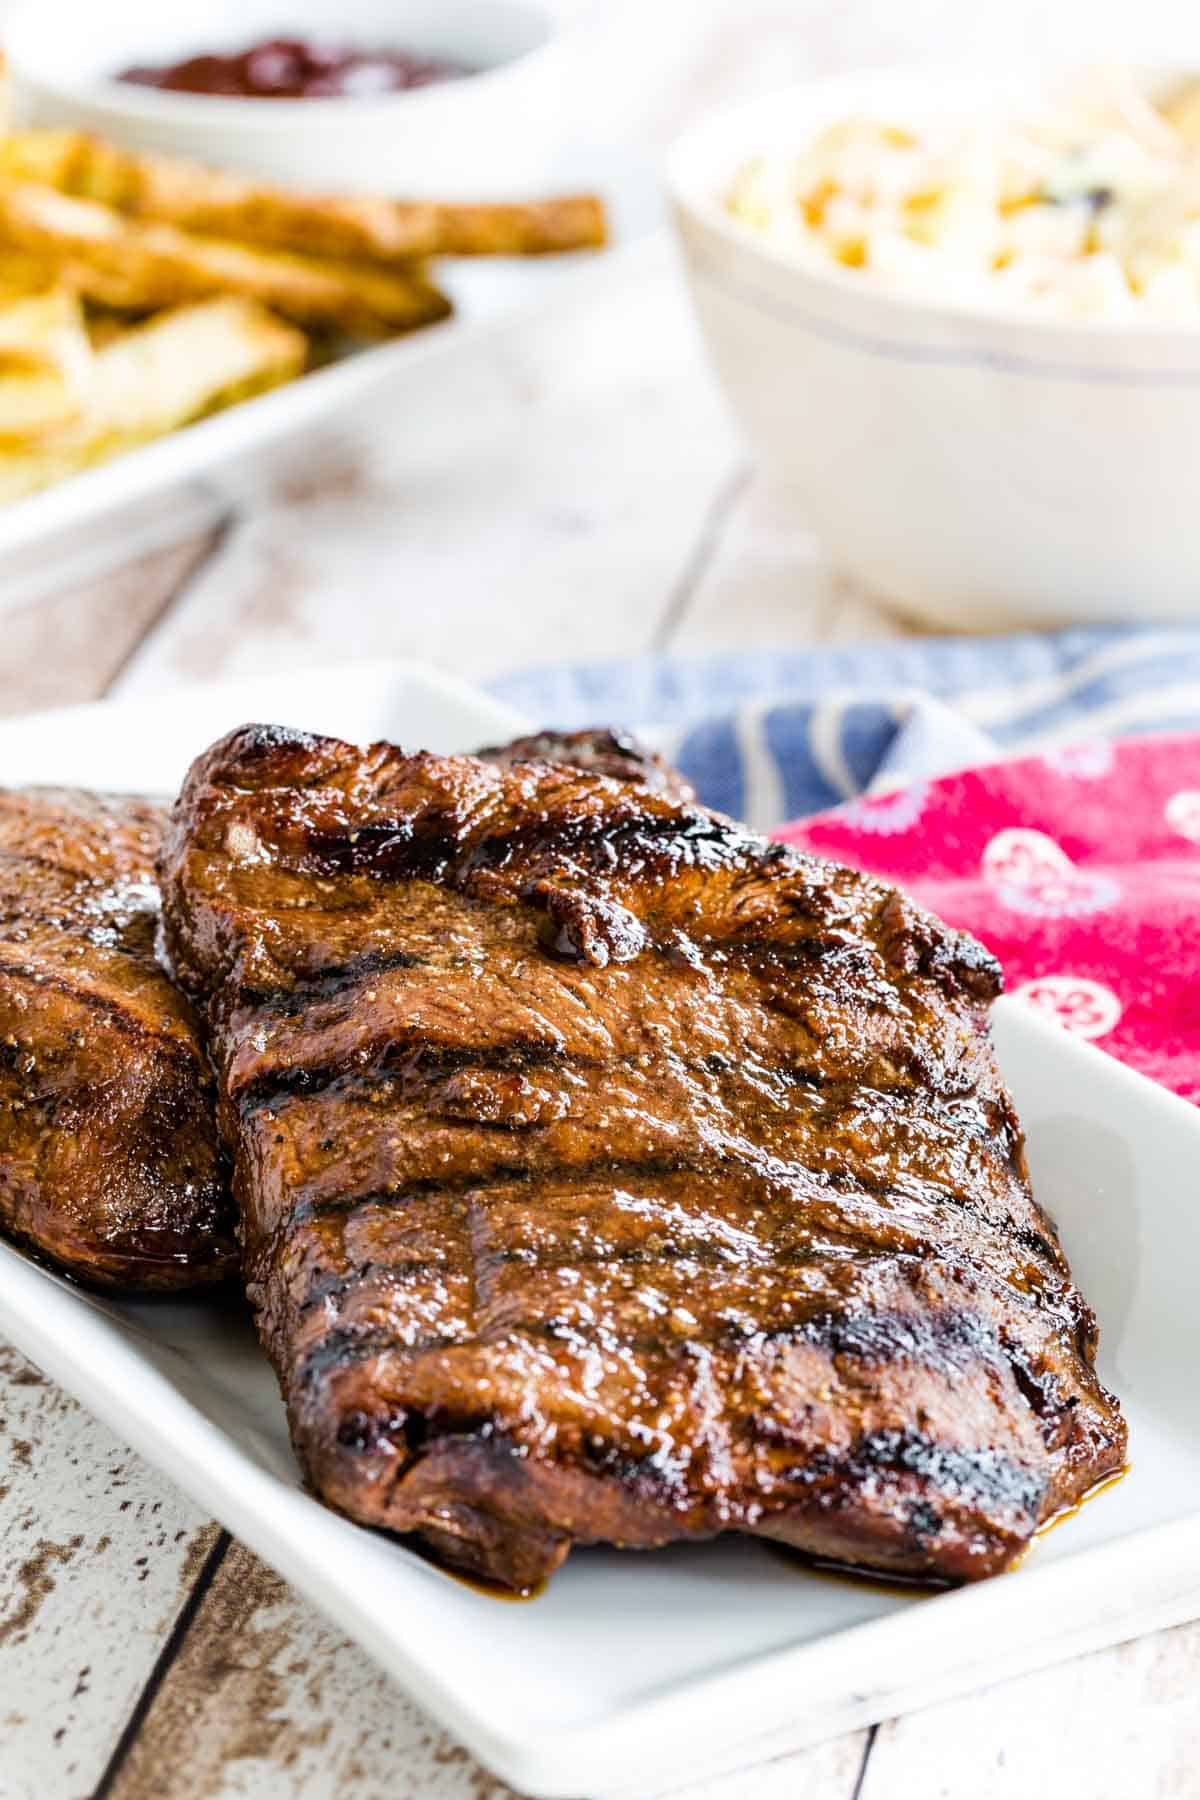 two grilled steaks on a serving plate